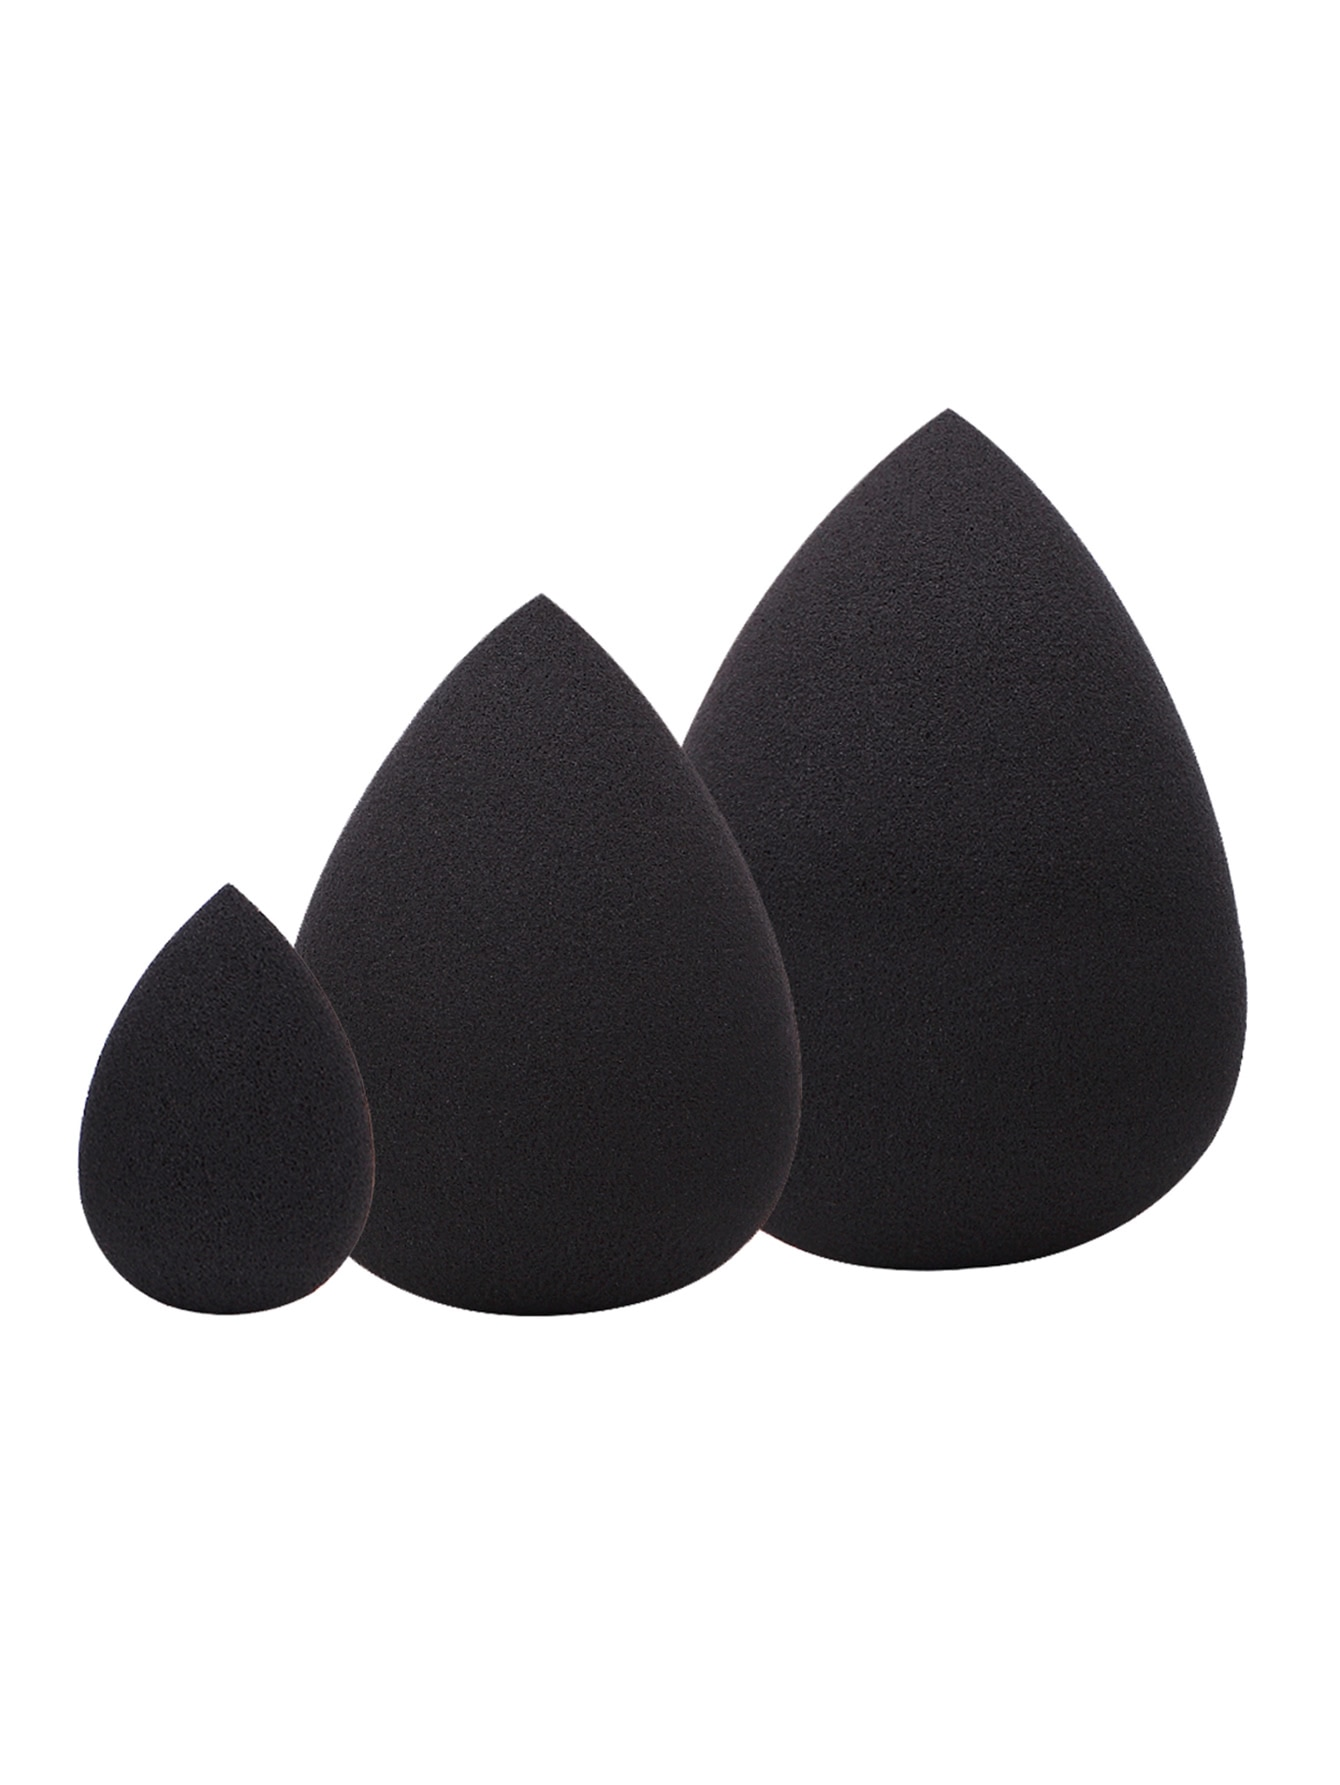 Water Drop Shaped Makeup Puff 3pcs